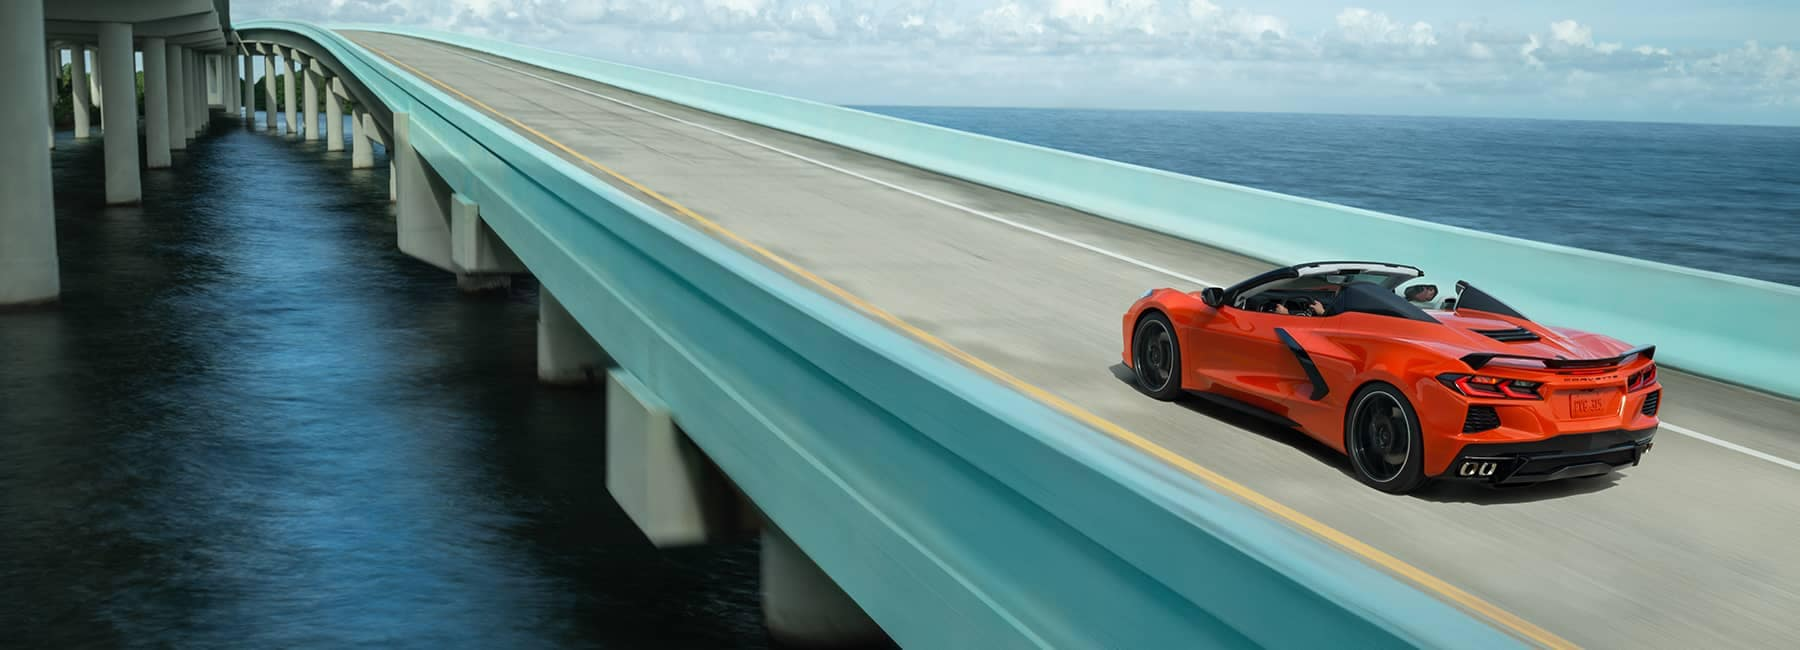 Red 2020 Chevrolet Corvette Stingray Convertible Driving on an Ocean Highway